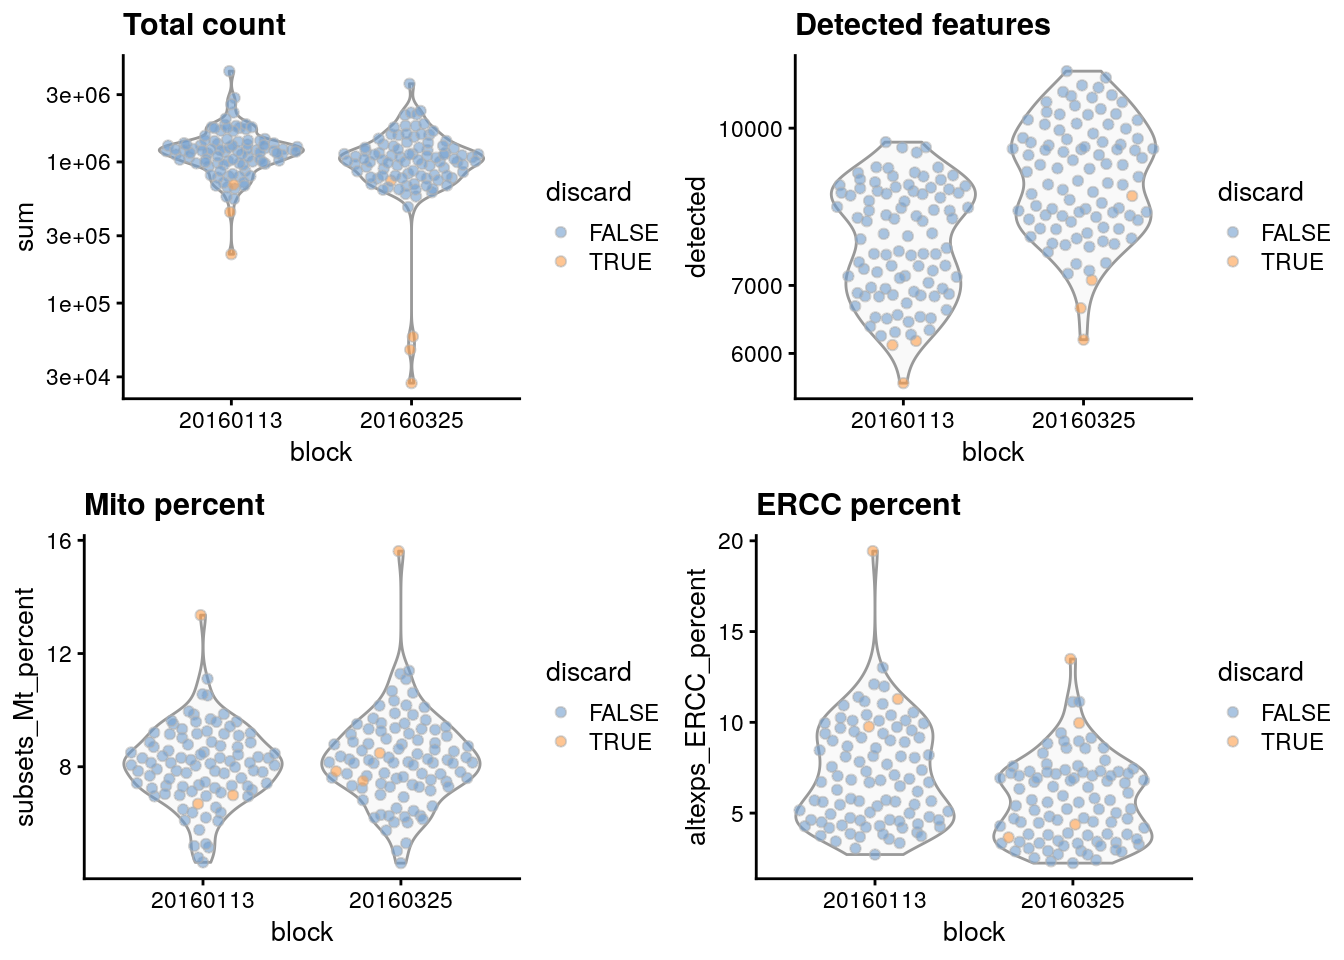 Distribution of each QC metric across cells in the 416B dataset, stratified by the plate of origin. Each point represents a cell and is colored according to whether that cell was discarded.